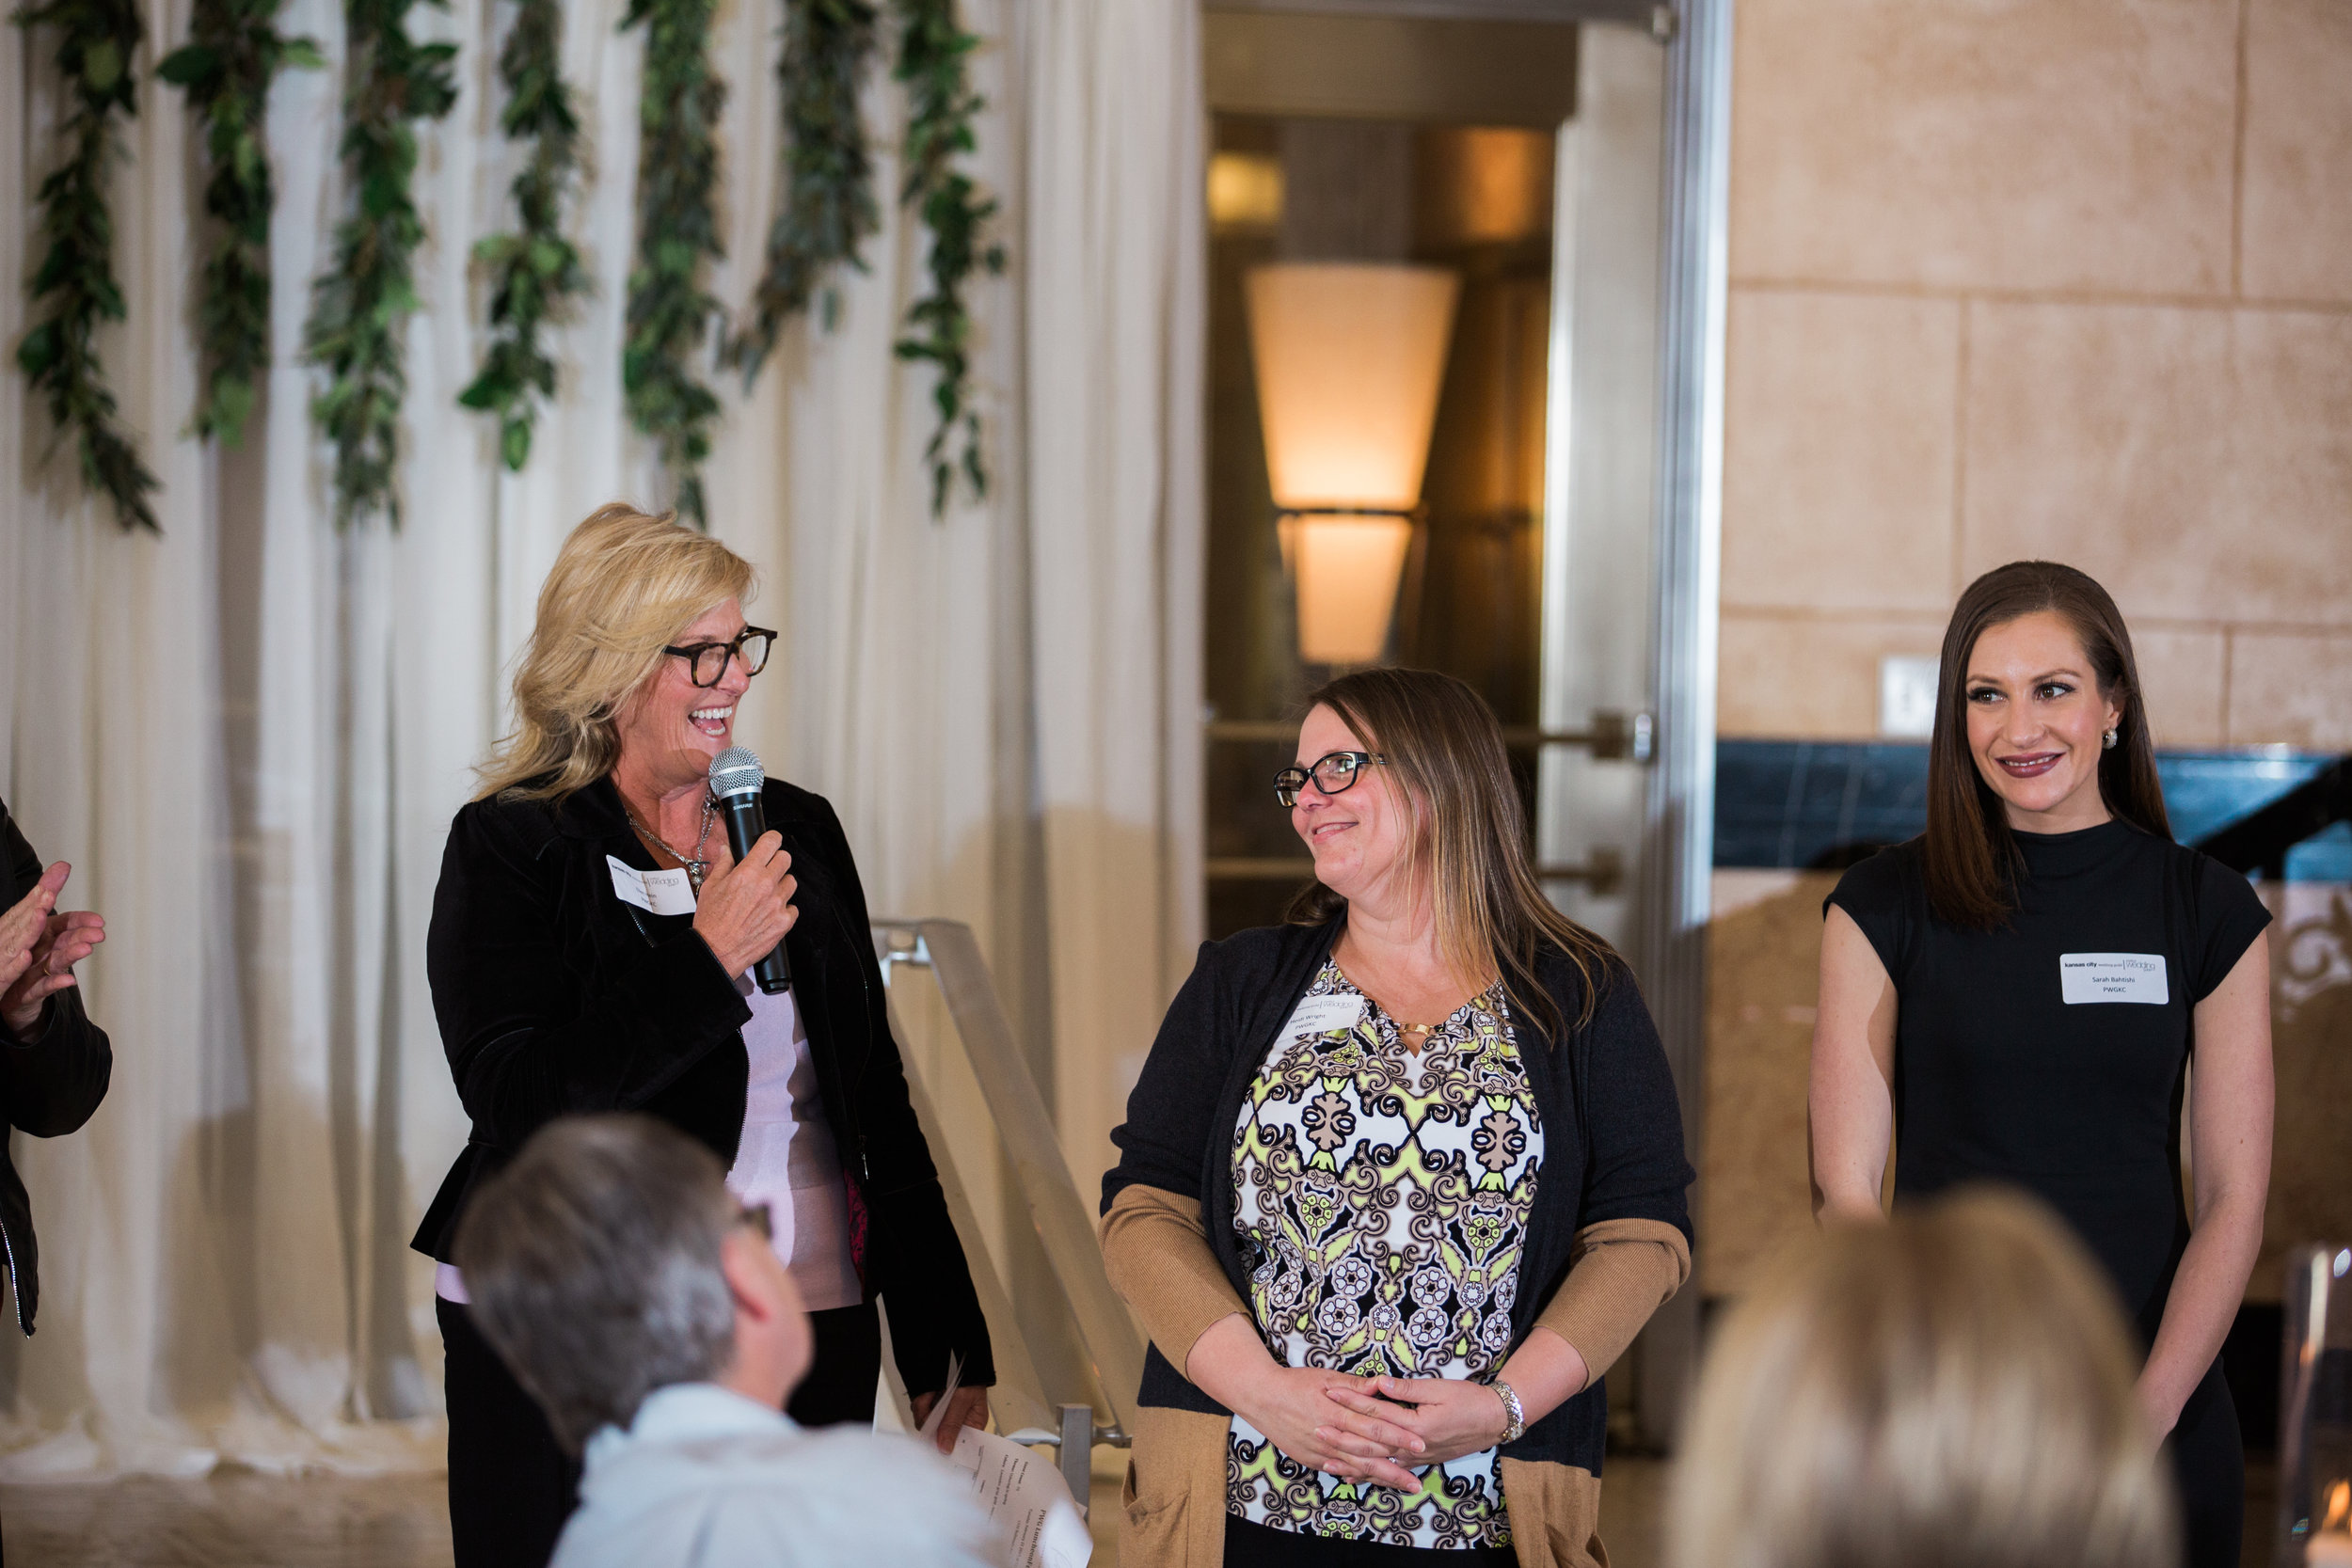 PWG FEB 2017 LUNCHEON MARISSA CRIBBS PHOTOGRAPHY-100.jpg